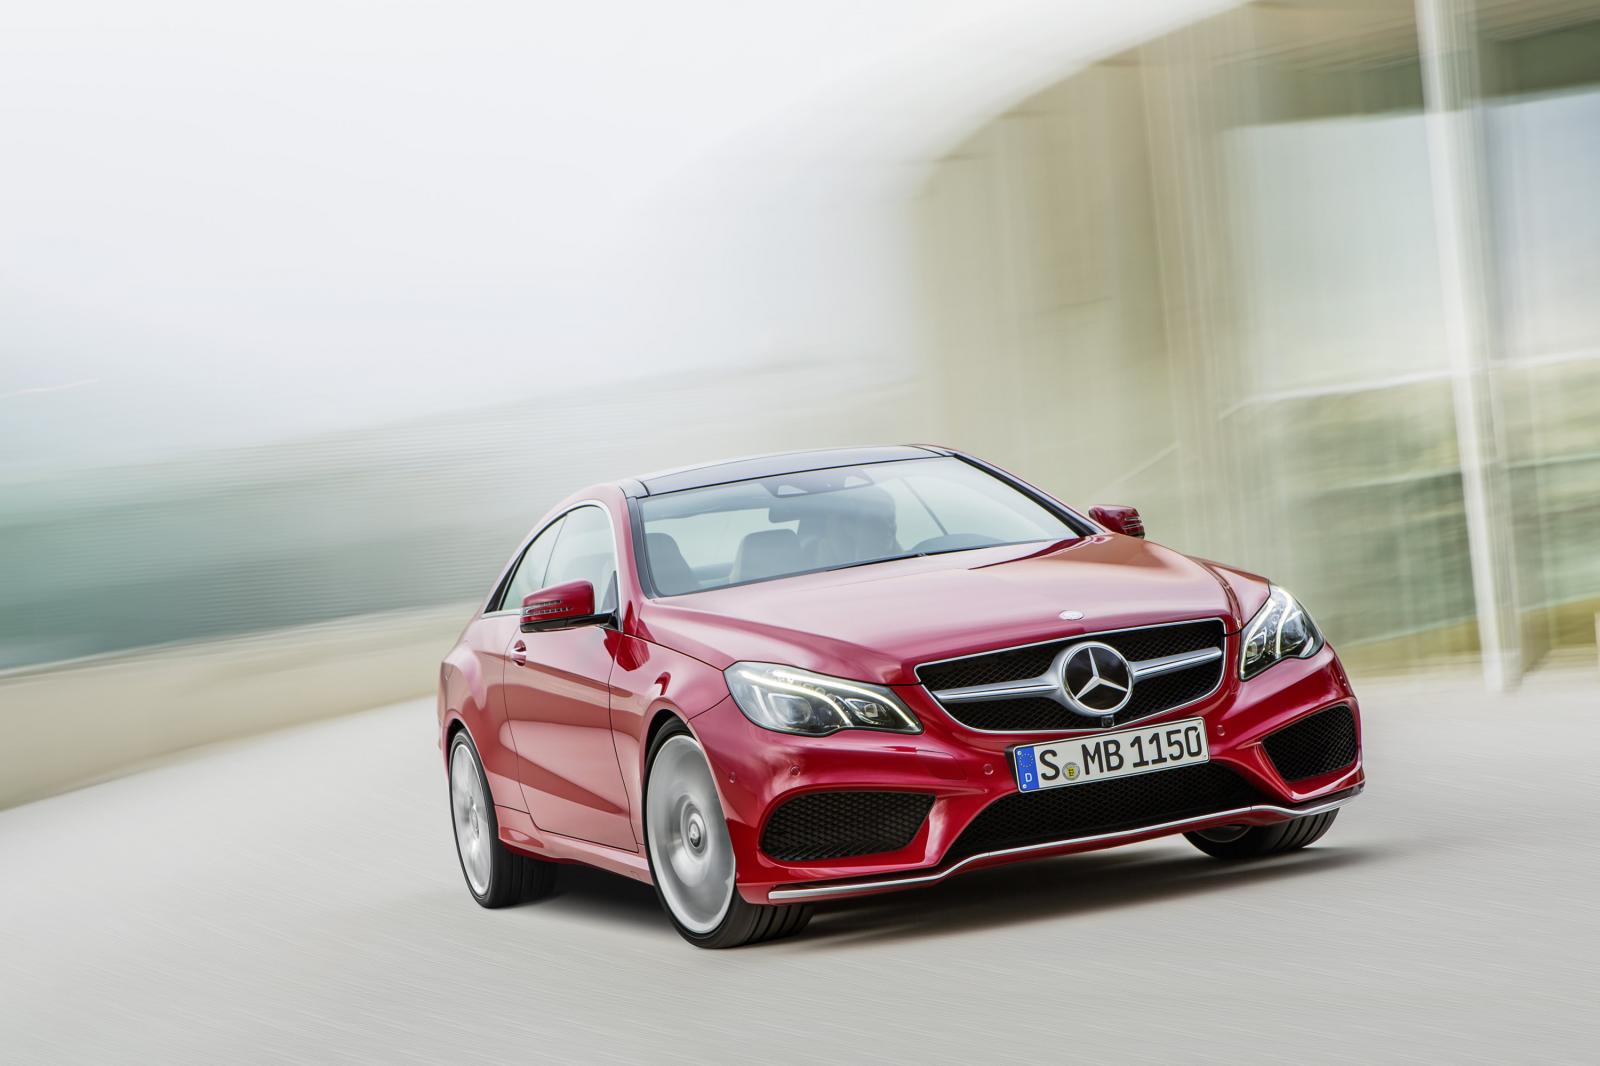 2014 mercedes benz e class coupe and cabriolet facelift for Mercedes benz e350 coupe convertible